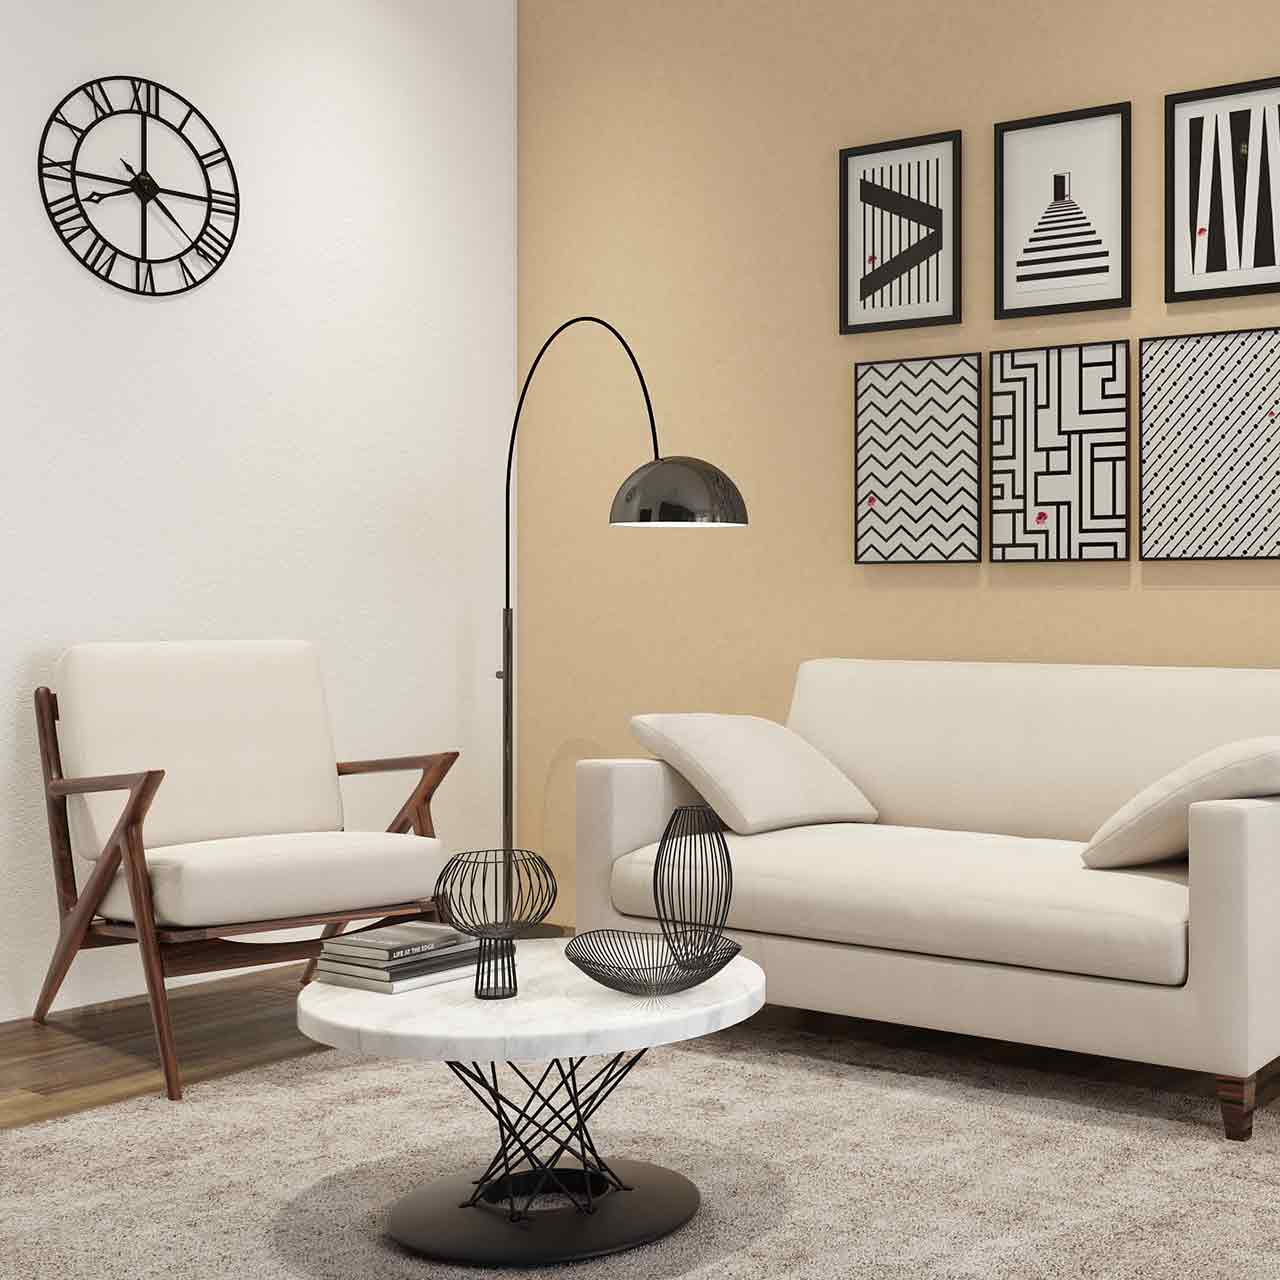 Simple style living room interior design with a unique and colourful designed coffee table.